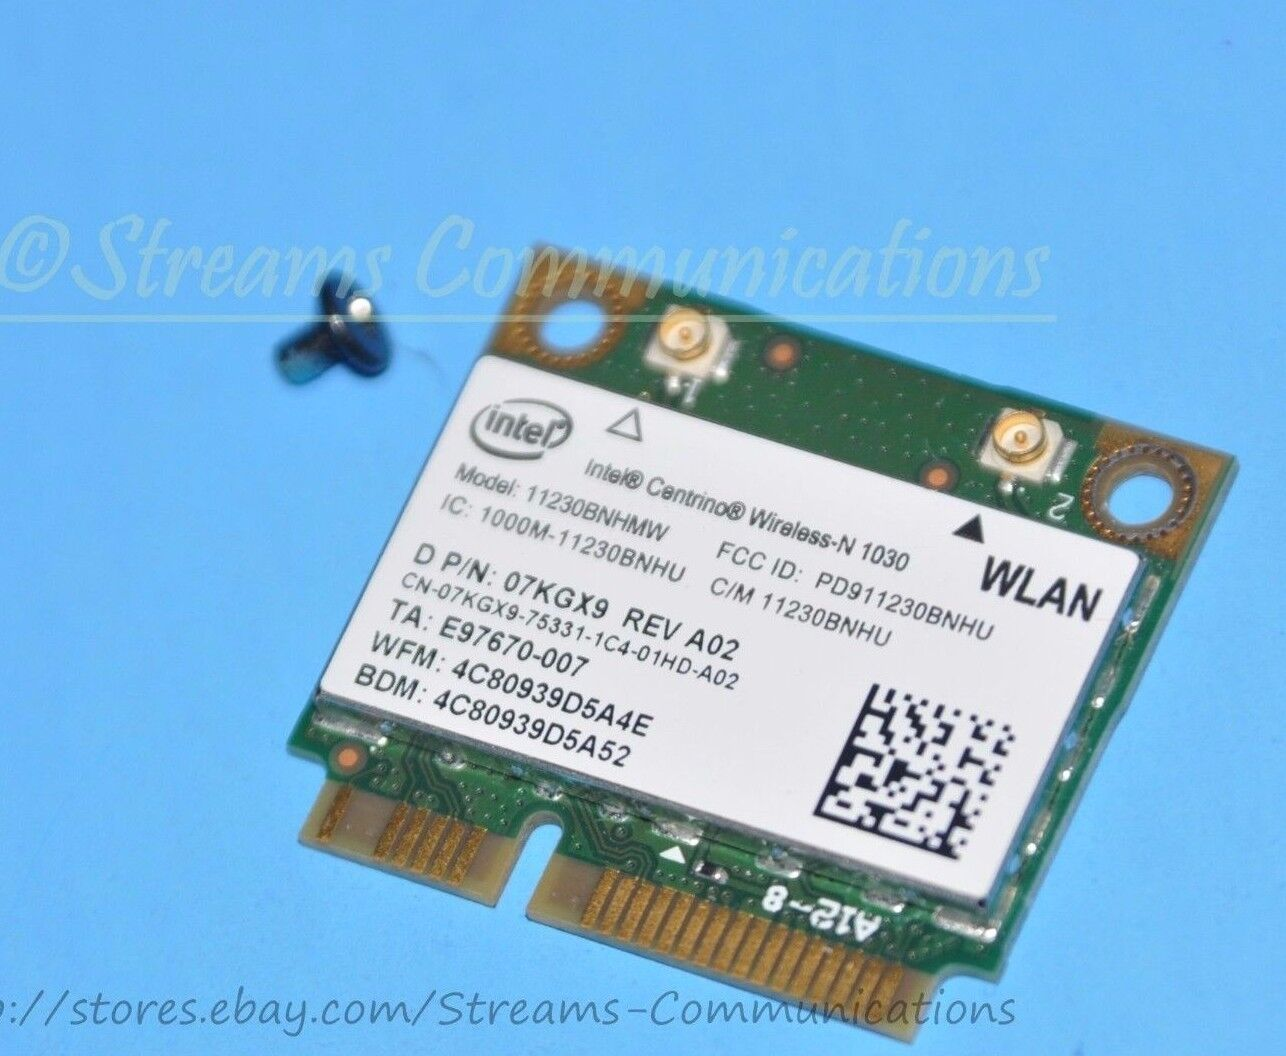 NYCPUFAN USB 2.0 Wireless WiFi LAN Card for Dell XPS 630i